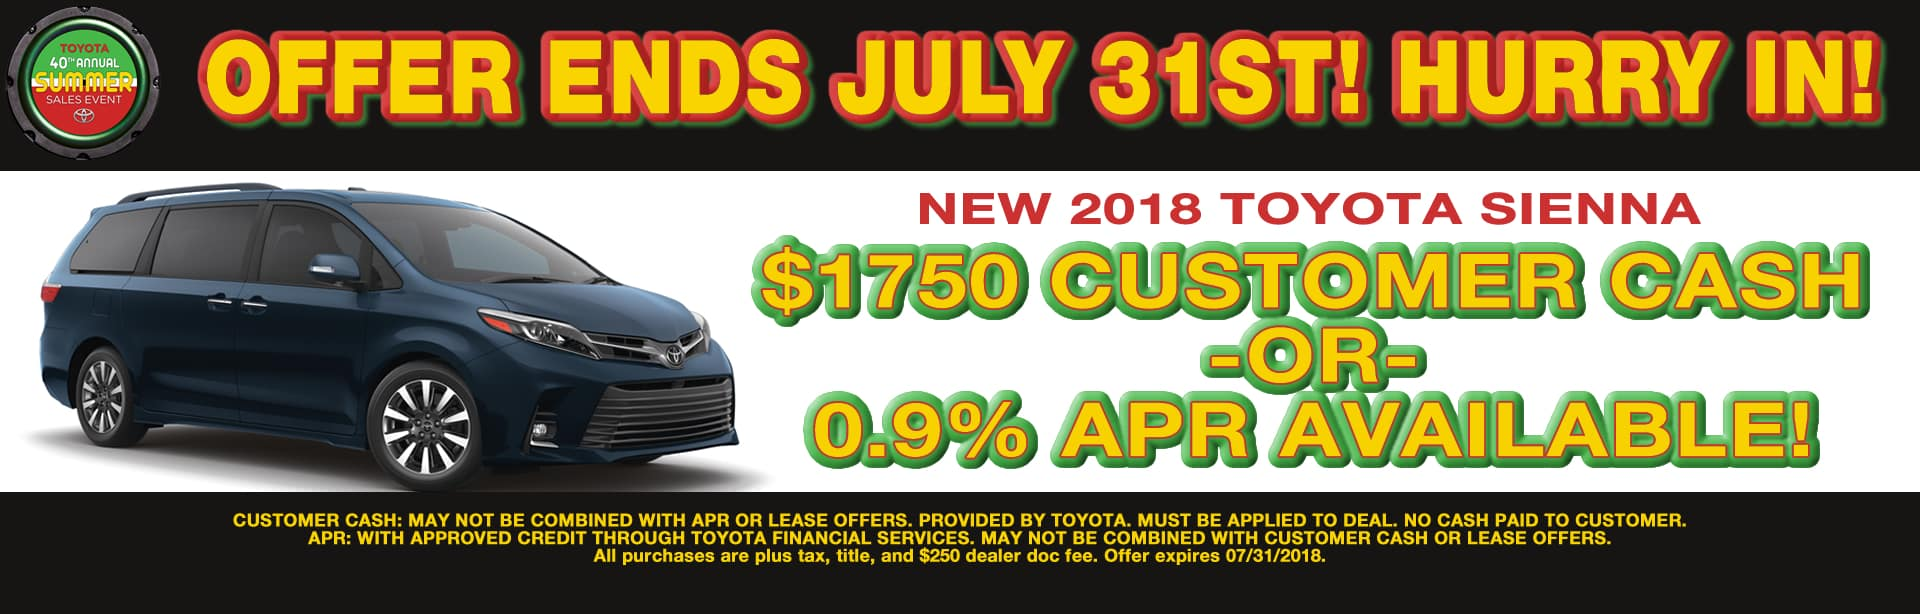 SIENNA CUSTOMER CASH APR SPECIAL OFFER CAIN TOYOTA NORTH CANTON OHIO